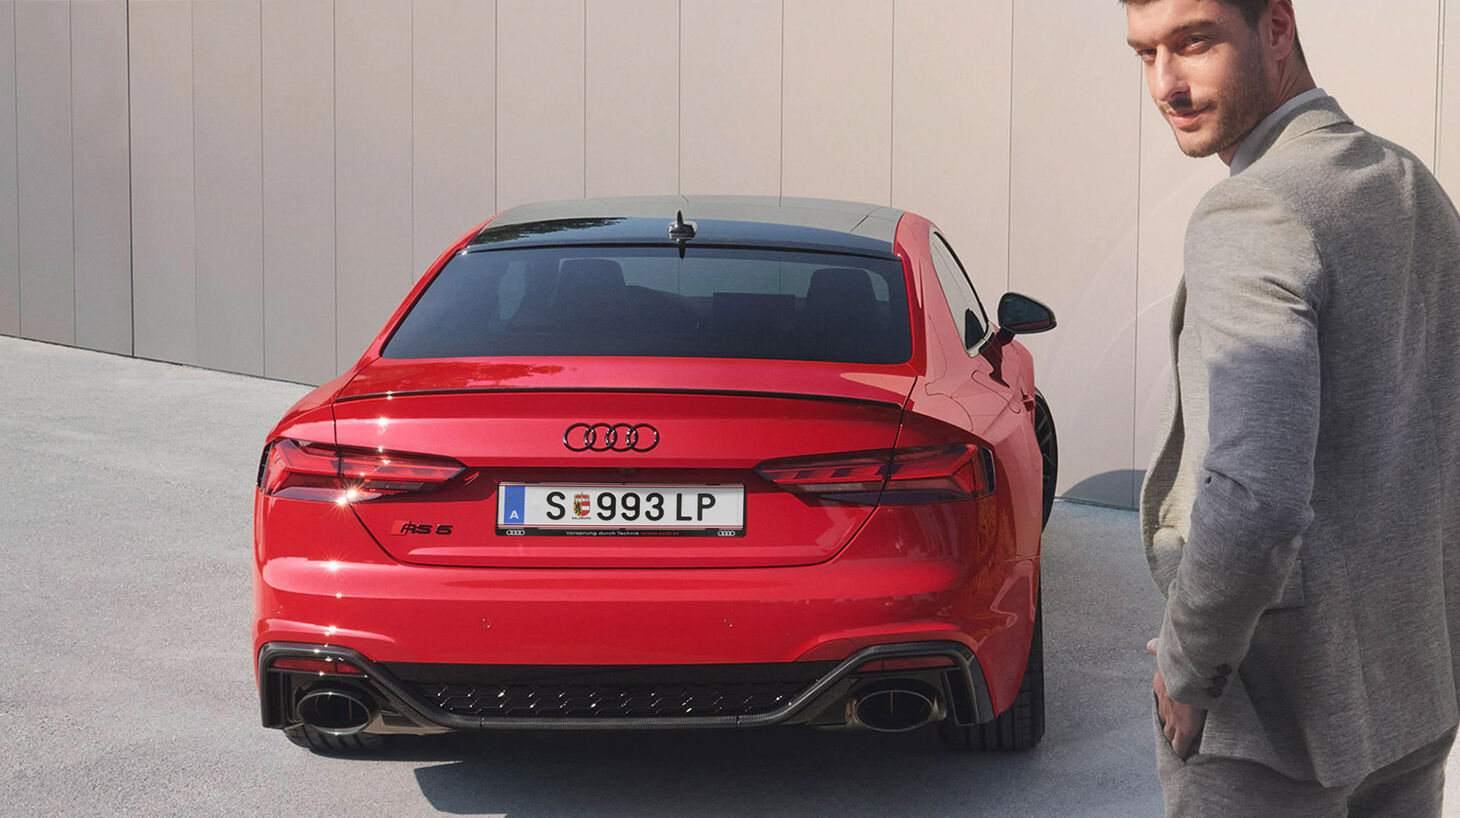 Heck eines roten Audi RS 5 Coupé